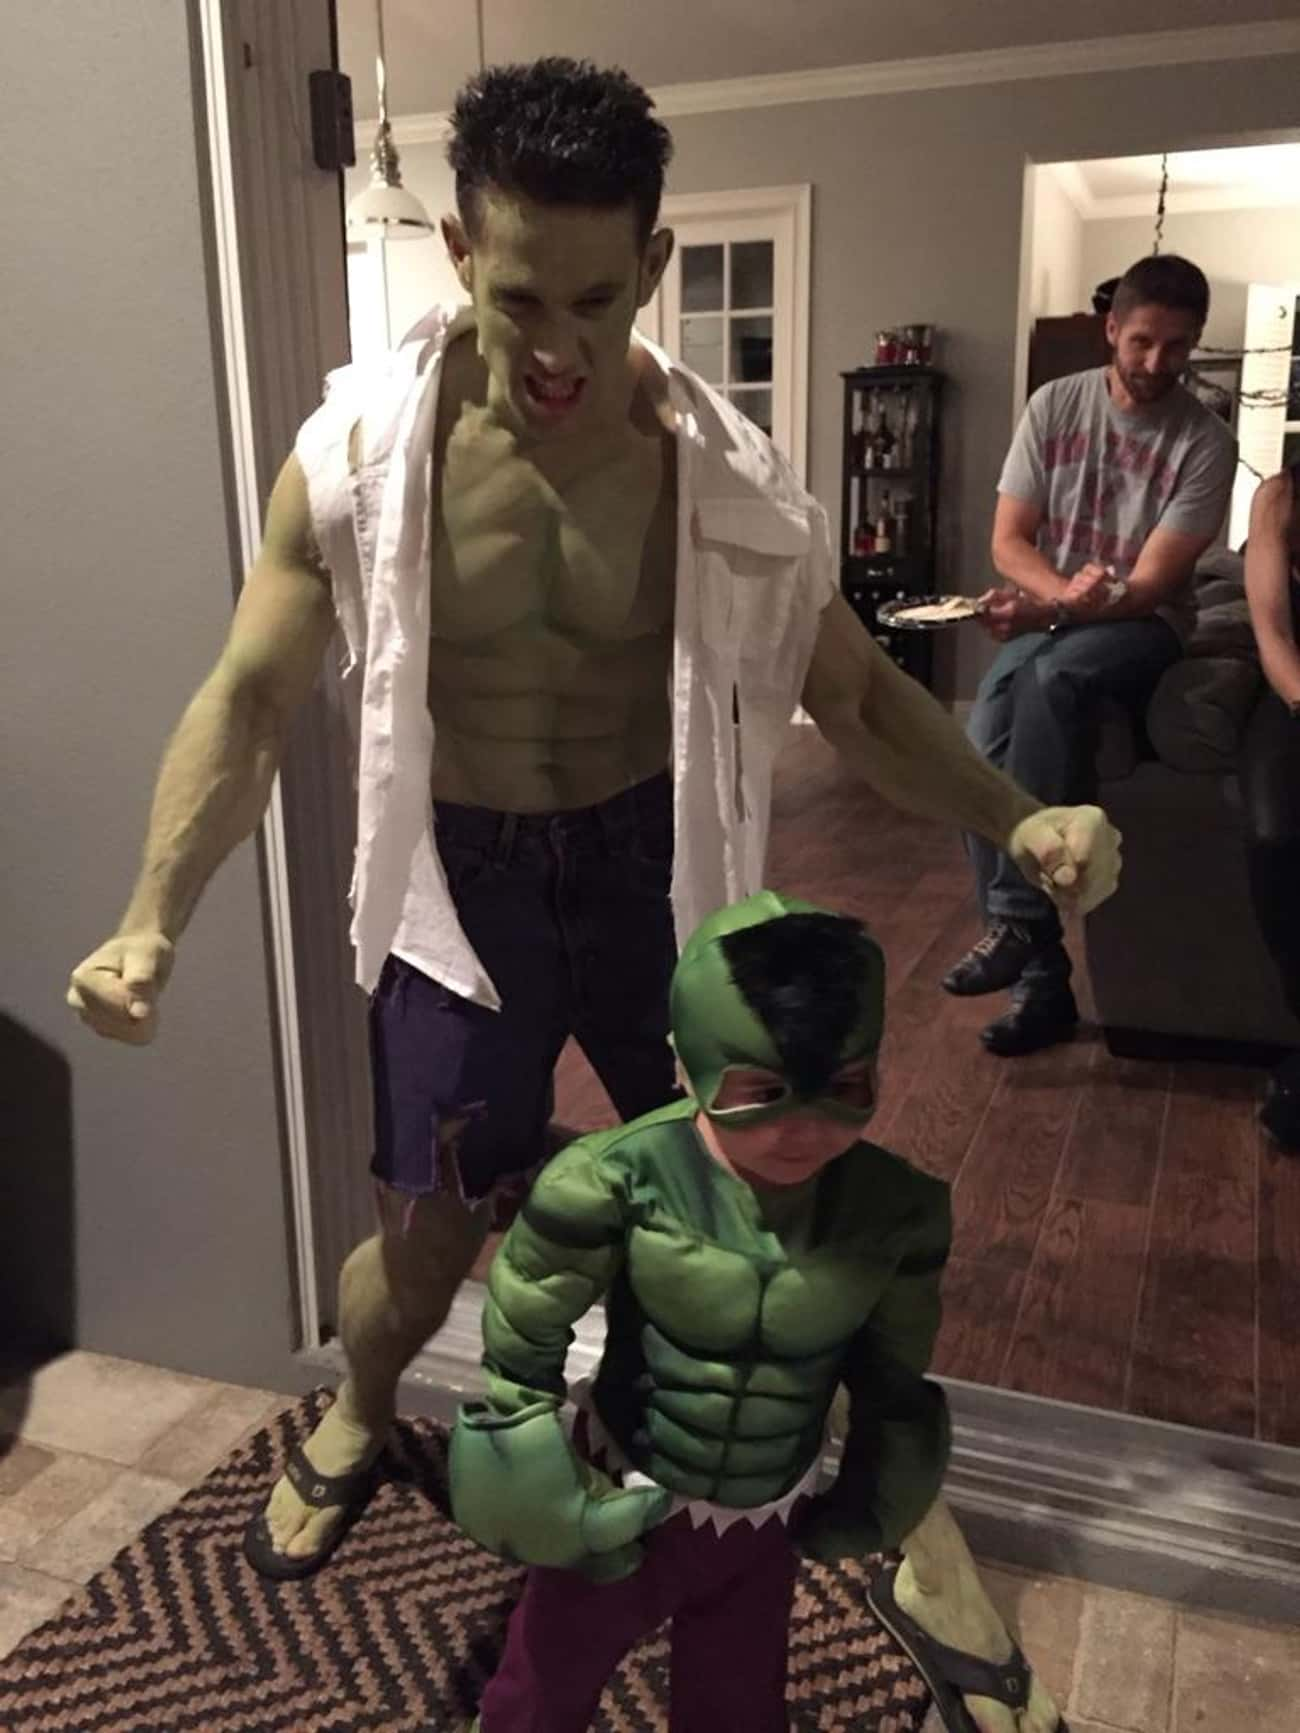 Hulk and Mini Hulkling is listed (or ranked) 4 on the list The 50+ Greatest Reddit Halloween Costumes of All Time